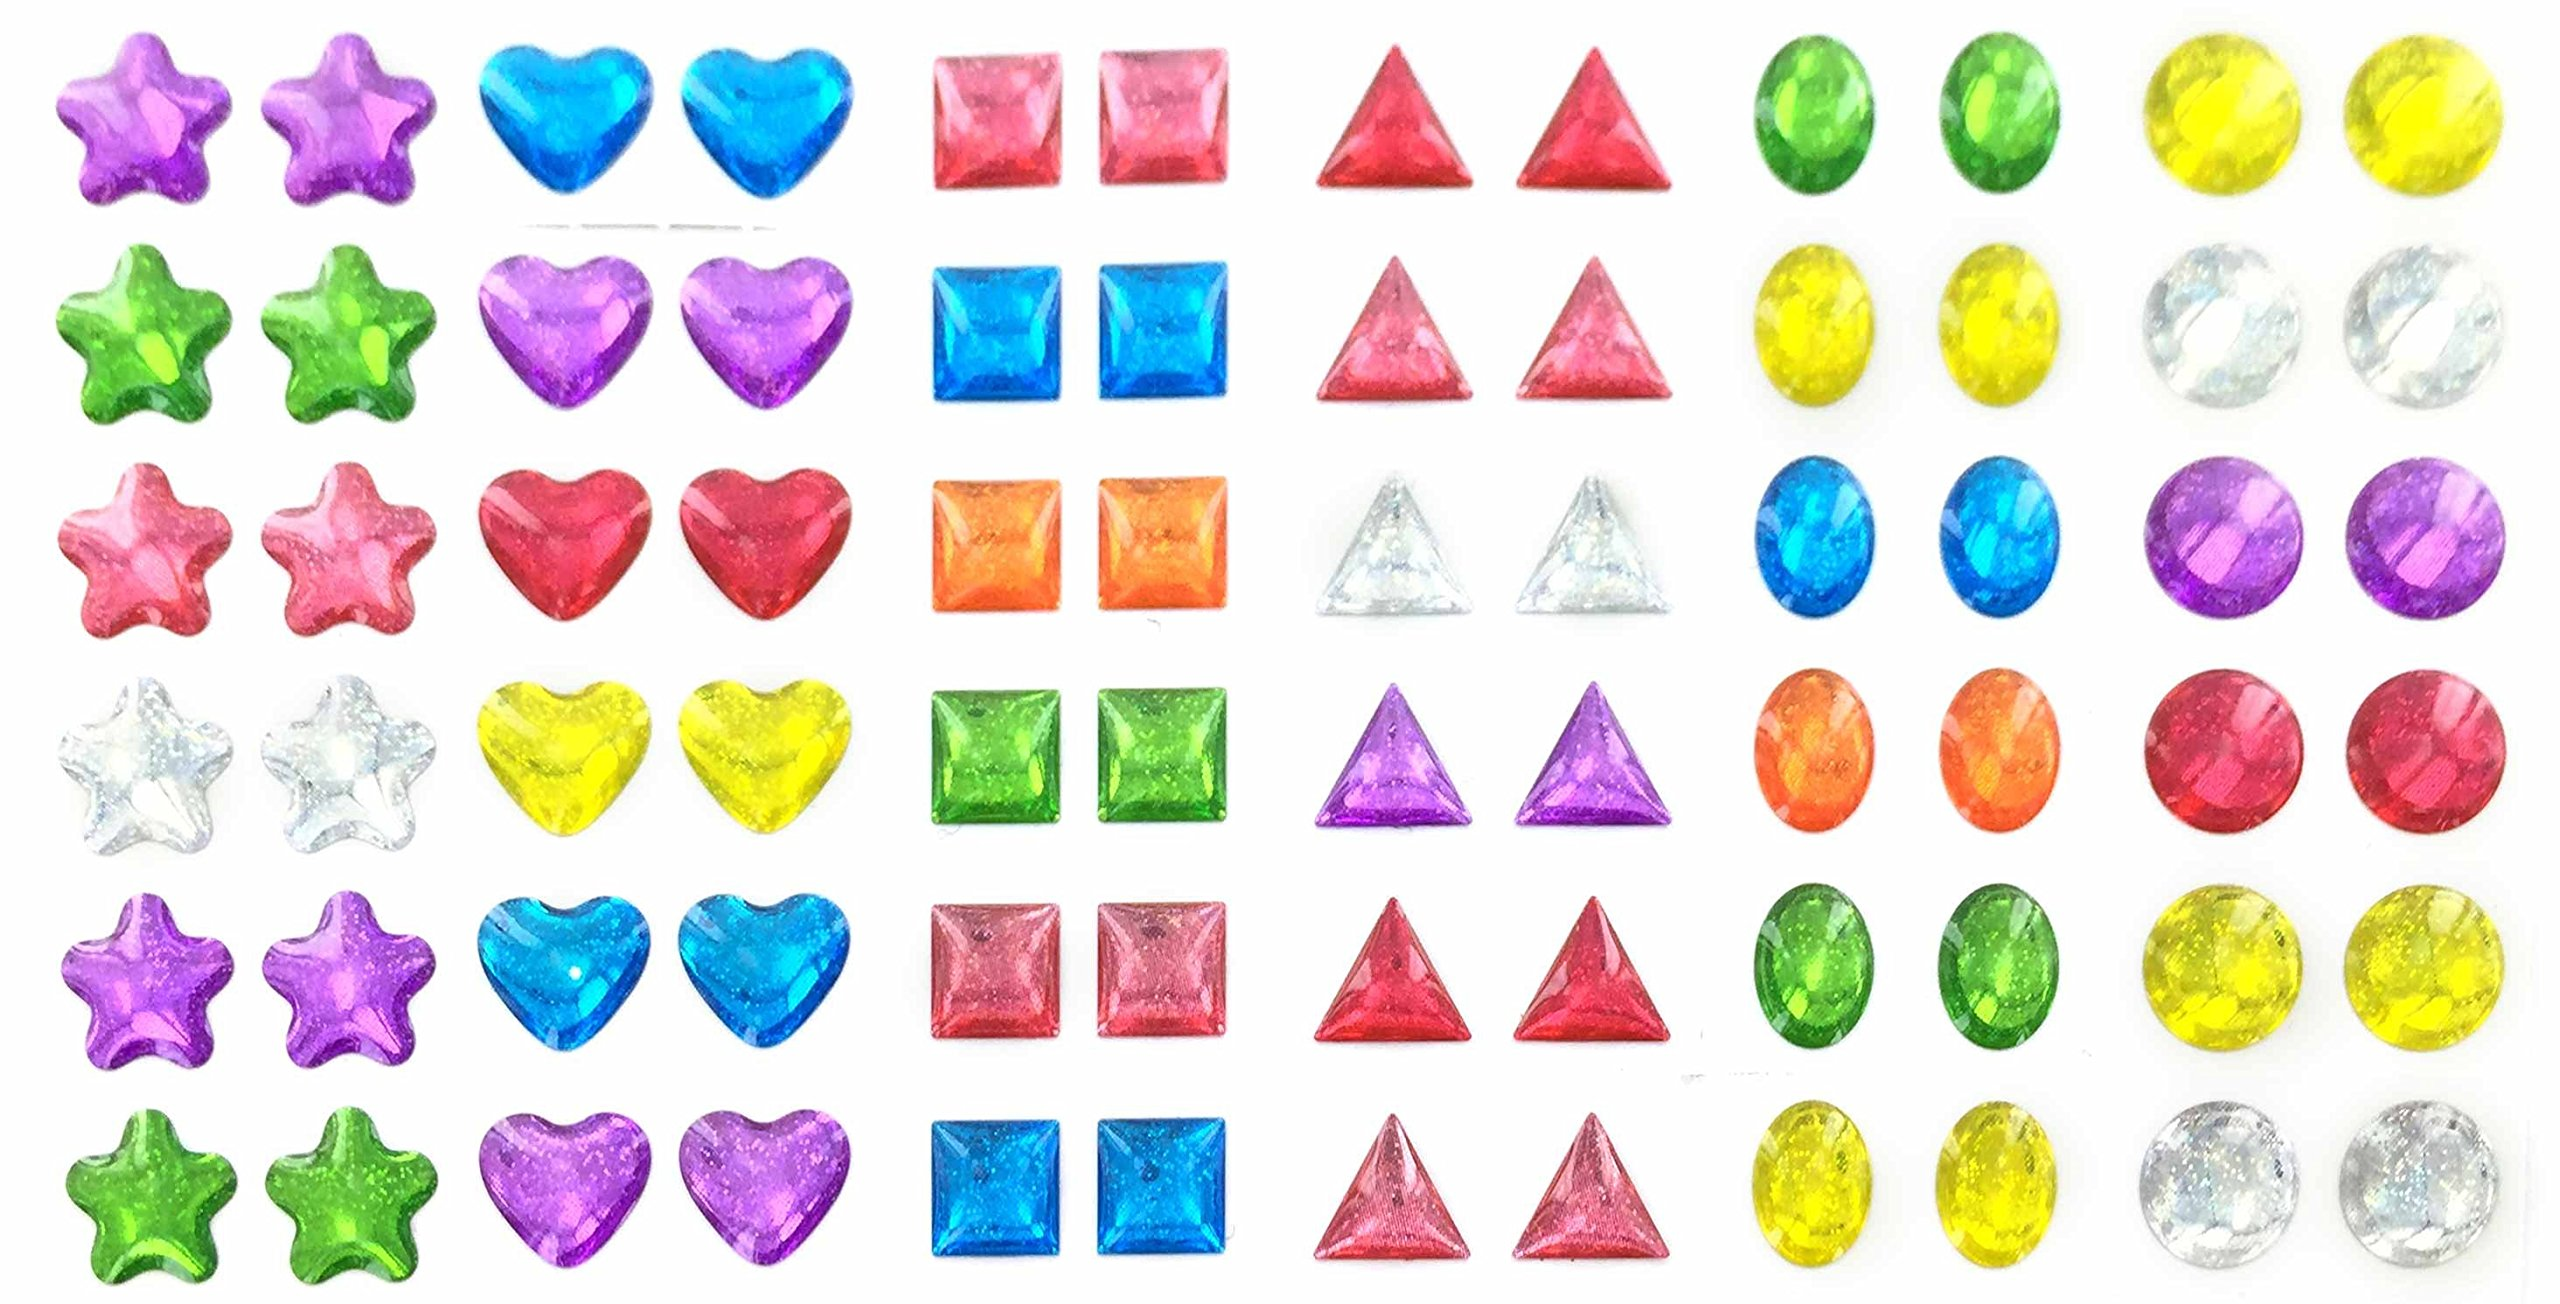 288 Piece Glitter Sparkle Stick-on Earrings - 288 Earrings - Multiple Colors & Shapes - Girls, Teens